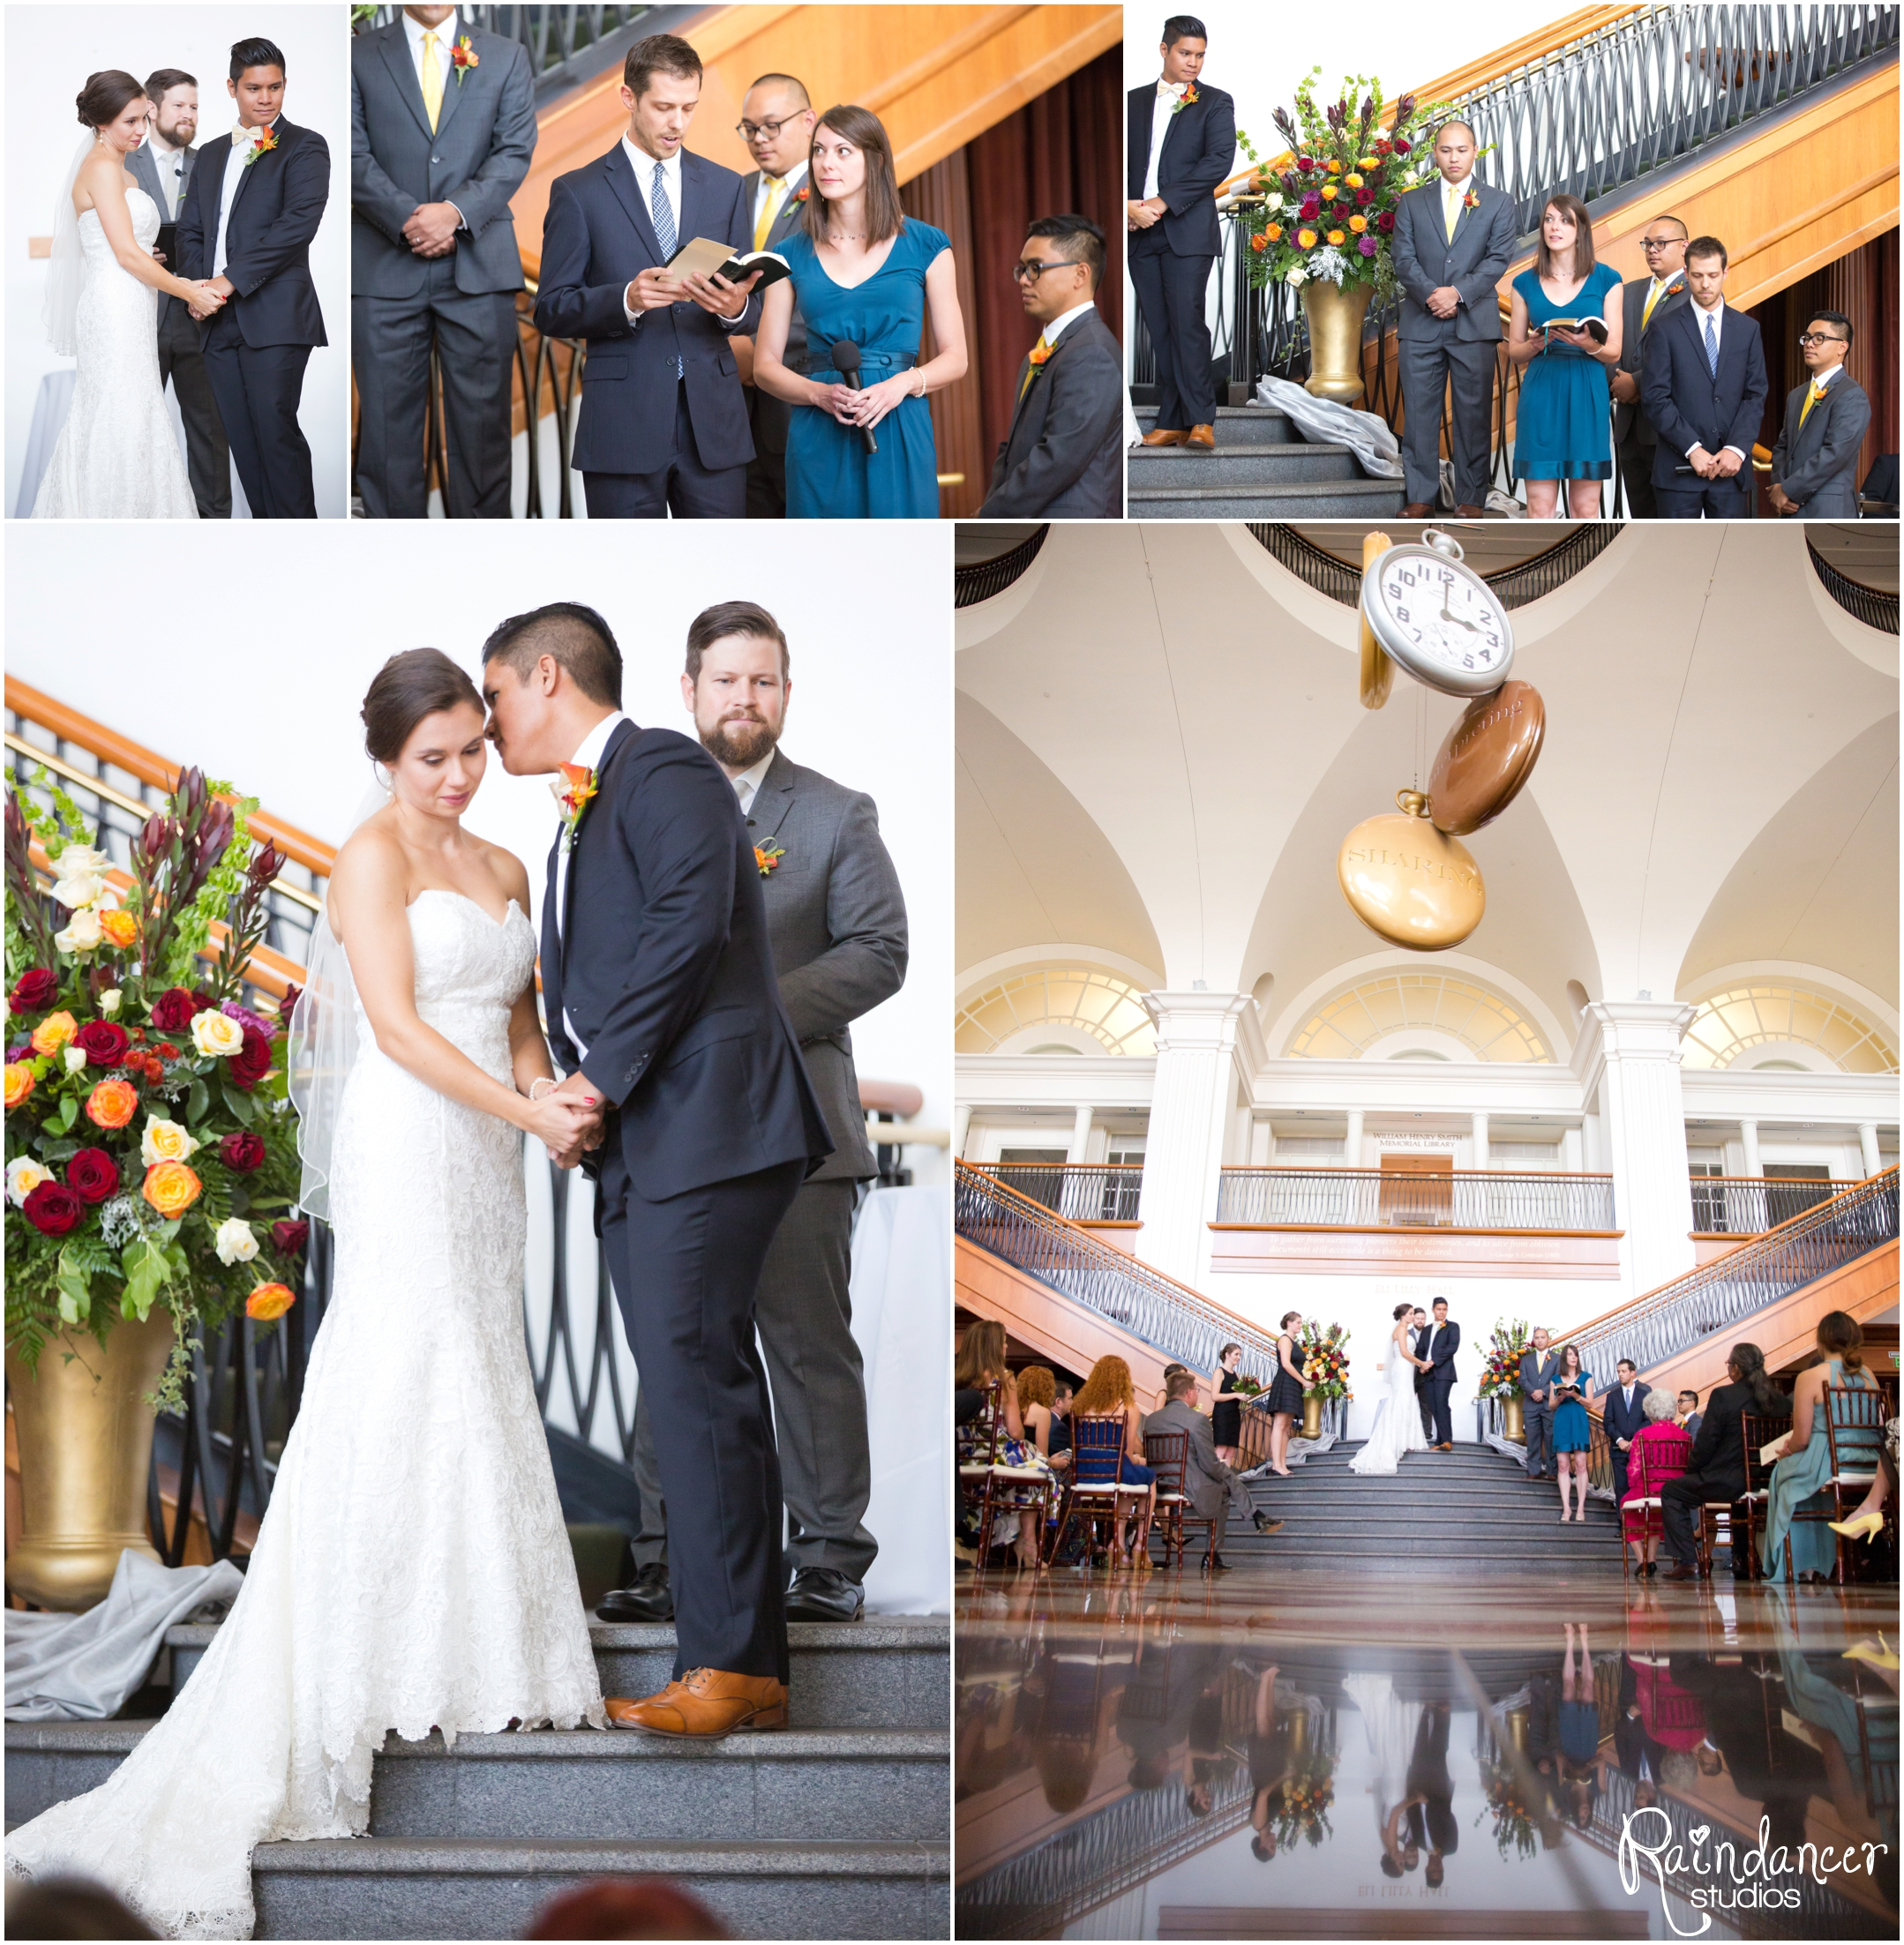 Kate Christian S Wedding At The Indiana Historical Society